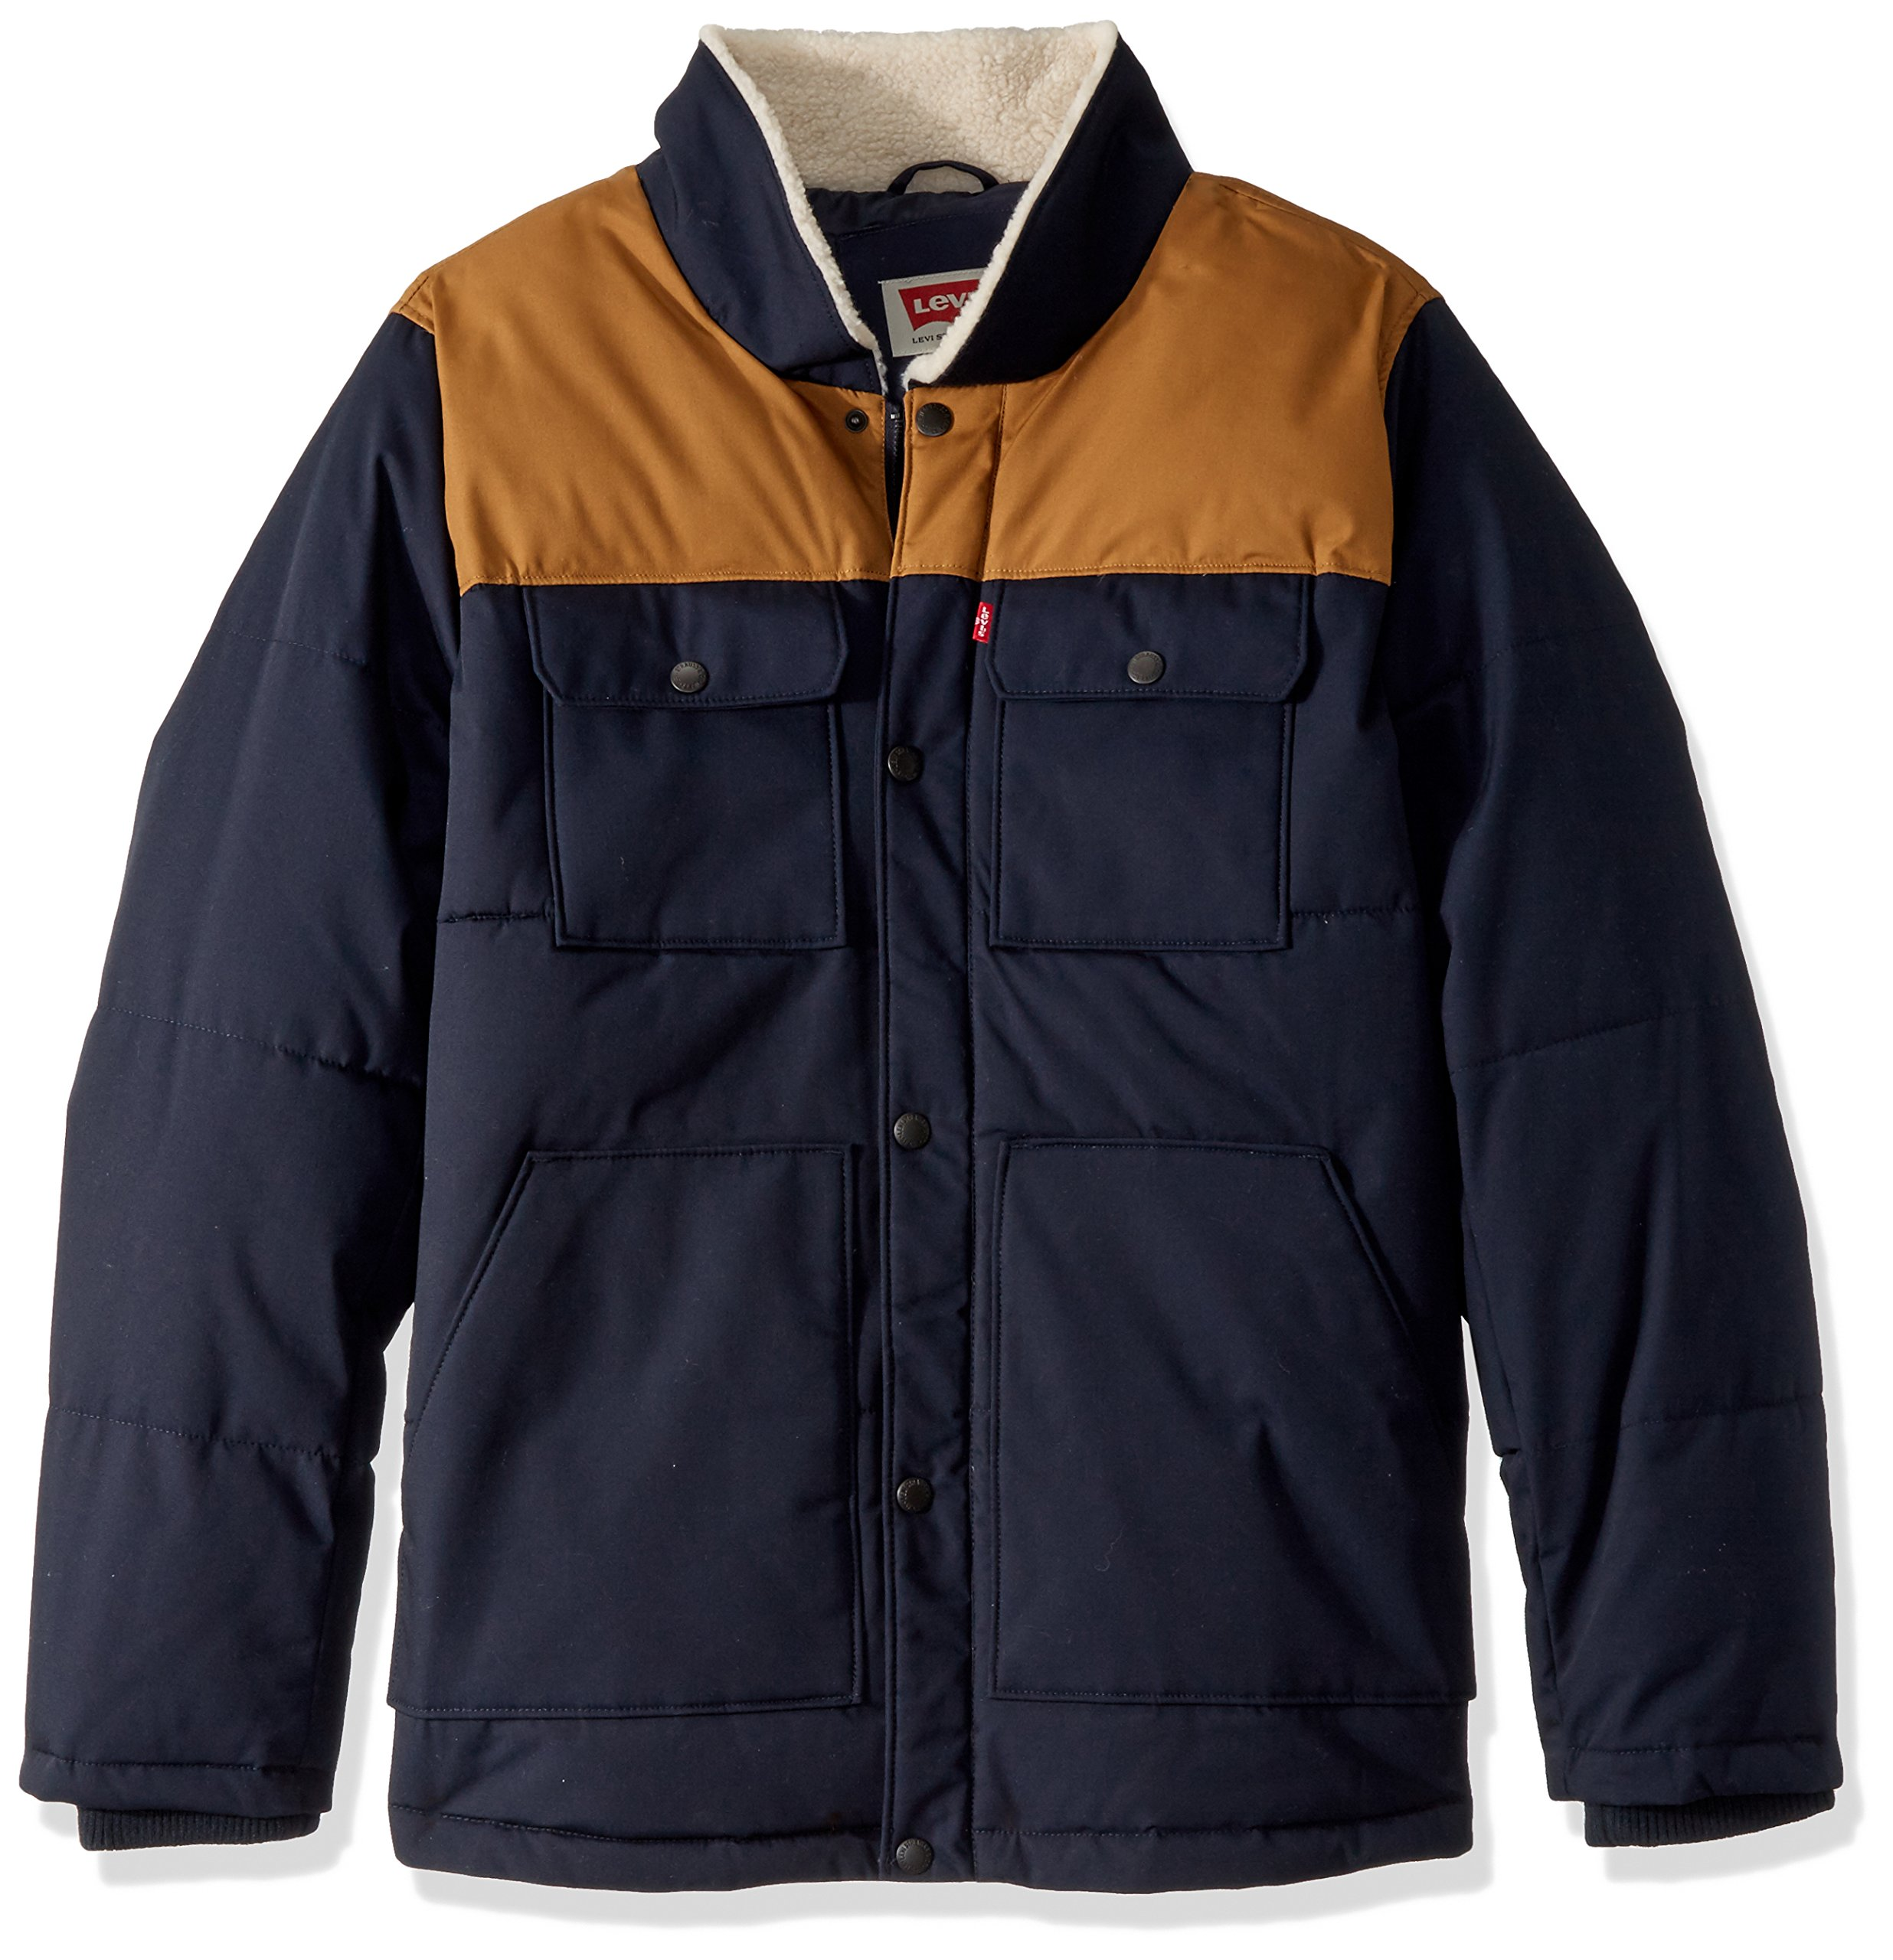 Levi's Men's Big and Tall Mixed Media Quilted Sherpa Shirt Jacket, Navy, 2X